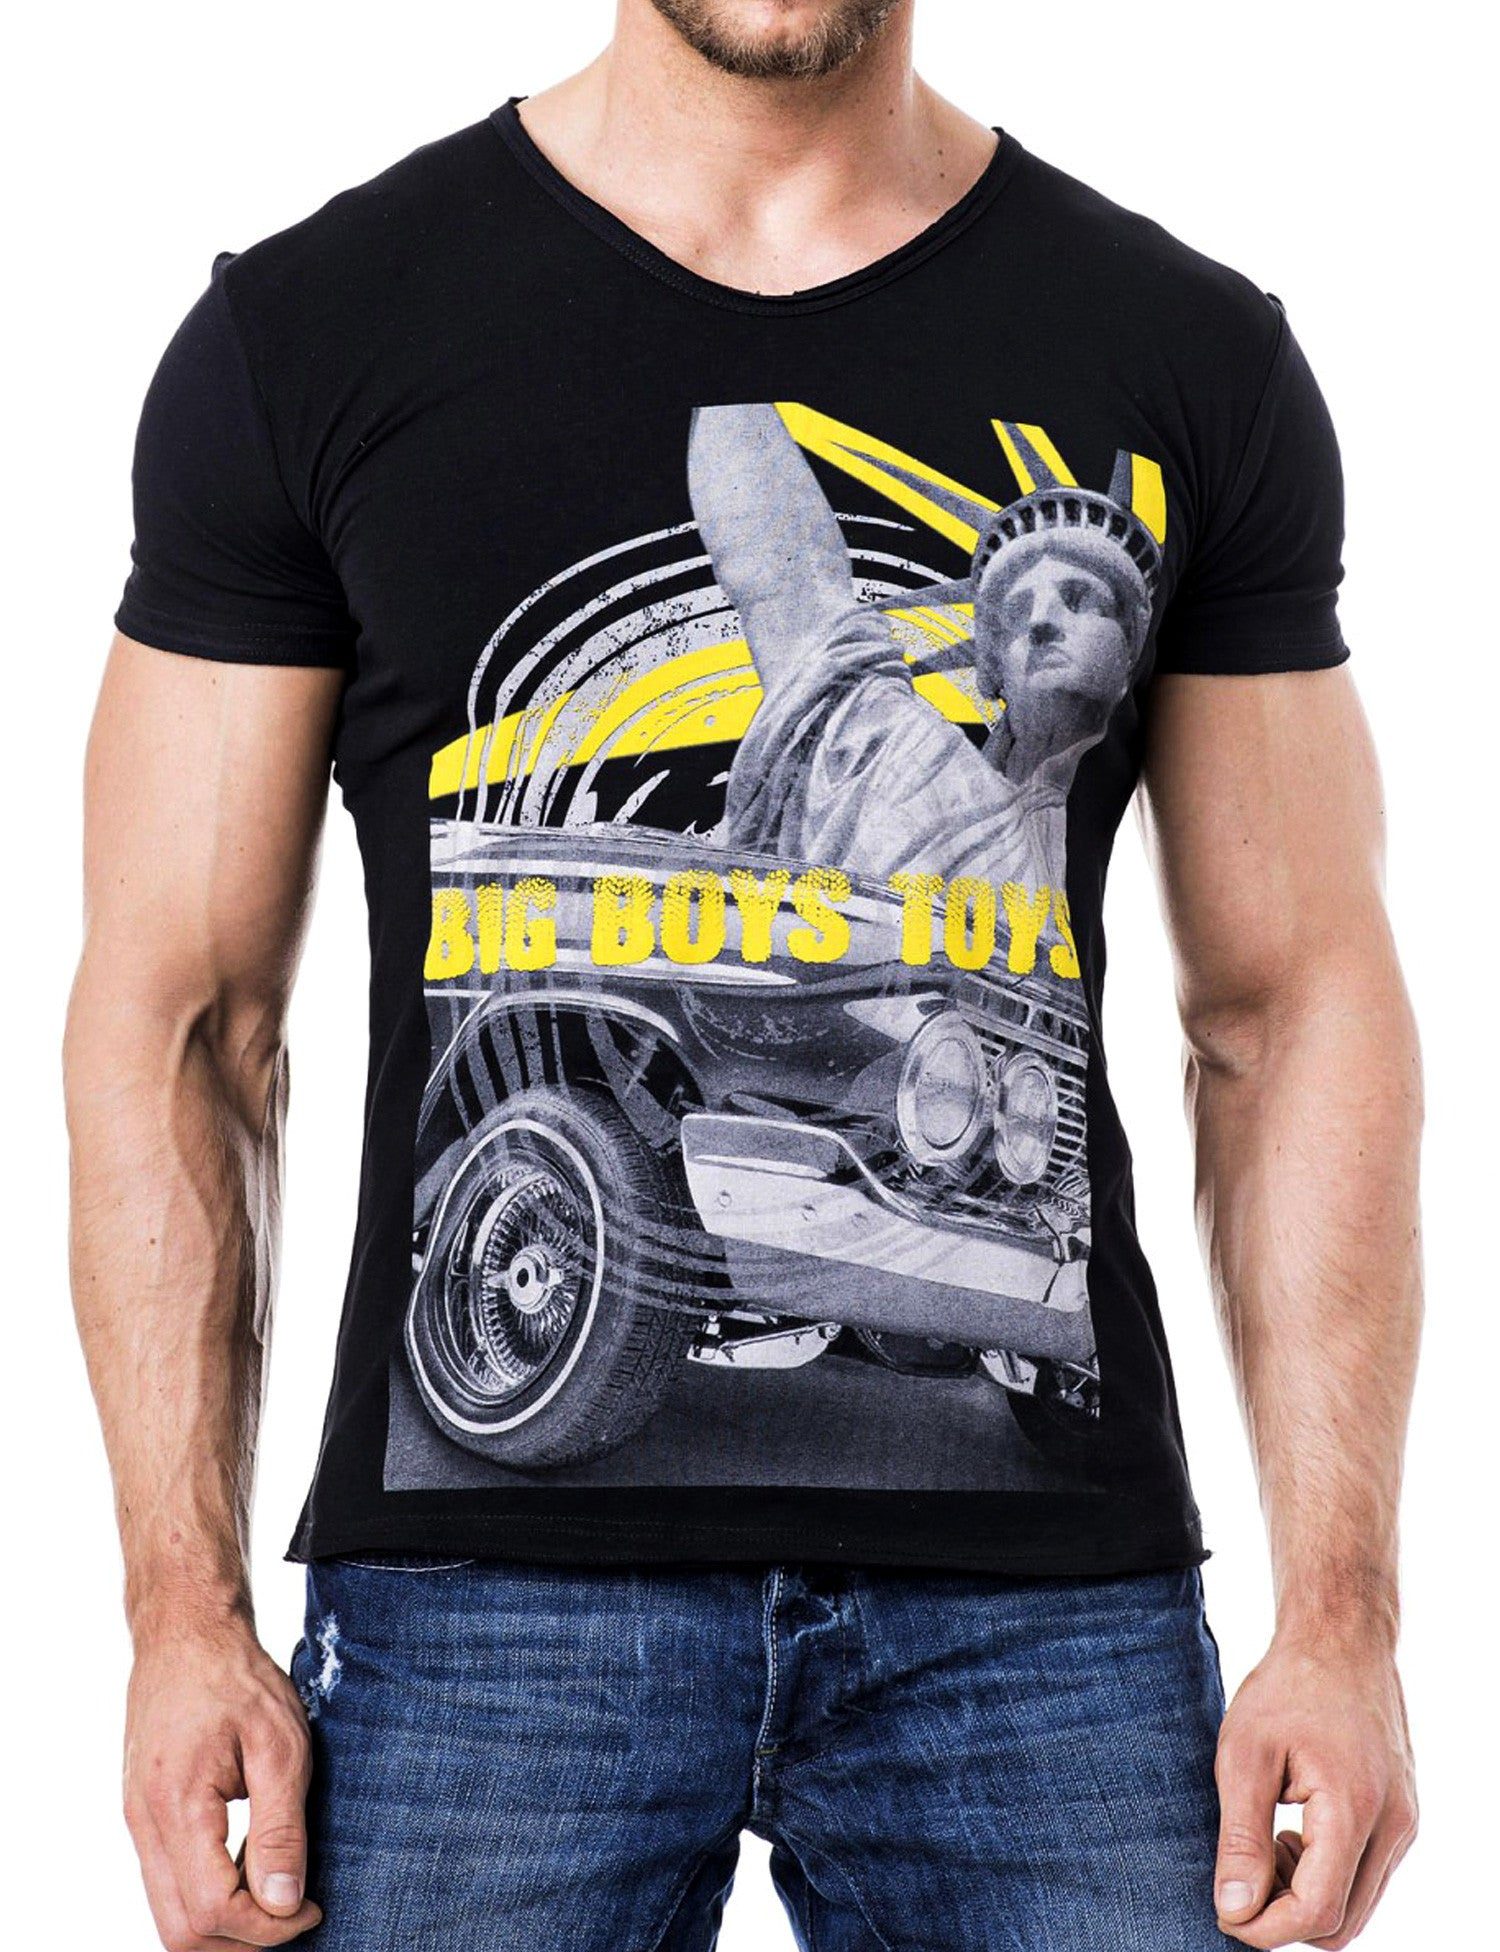 Big Boys Toys V-Neck T-Shirt Black